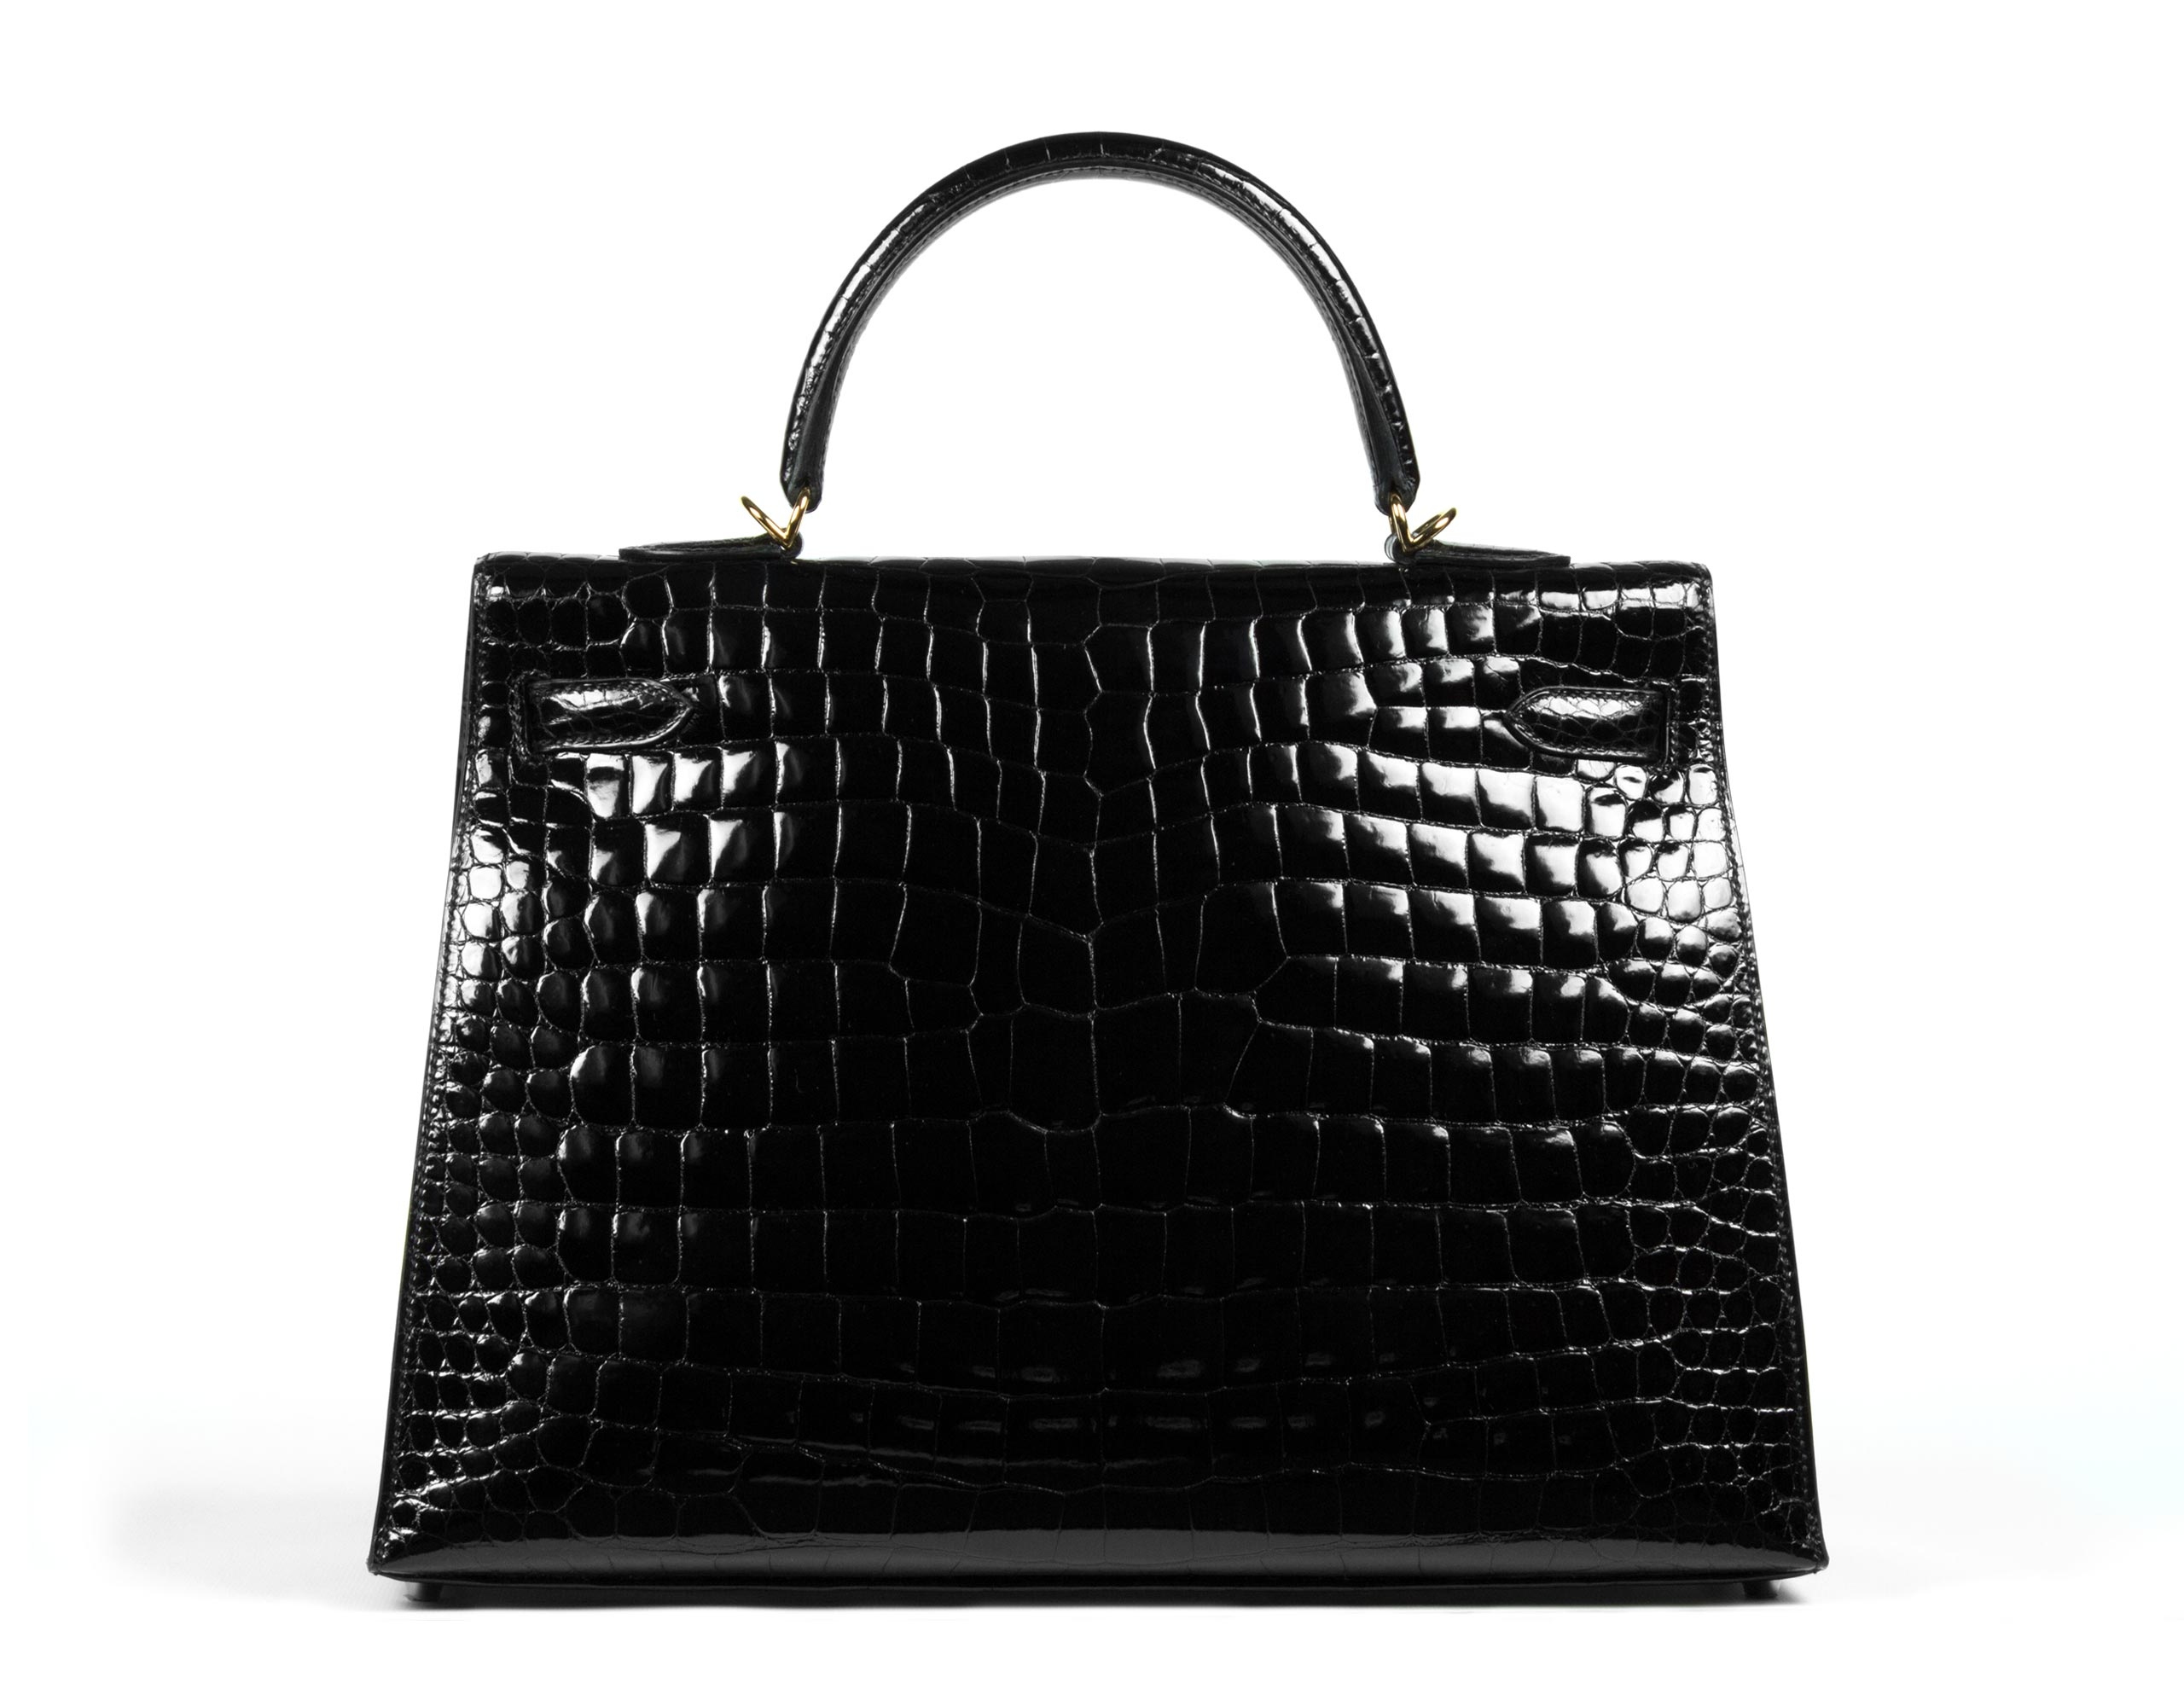 Hermes Bag Kelly Black Porosus Croc Shiny 35cm K72 Back